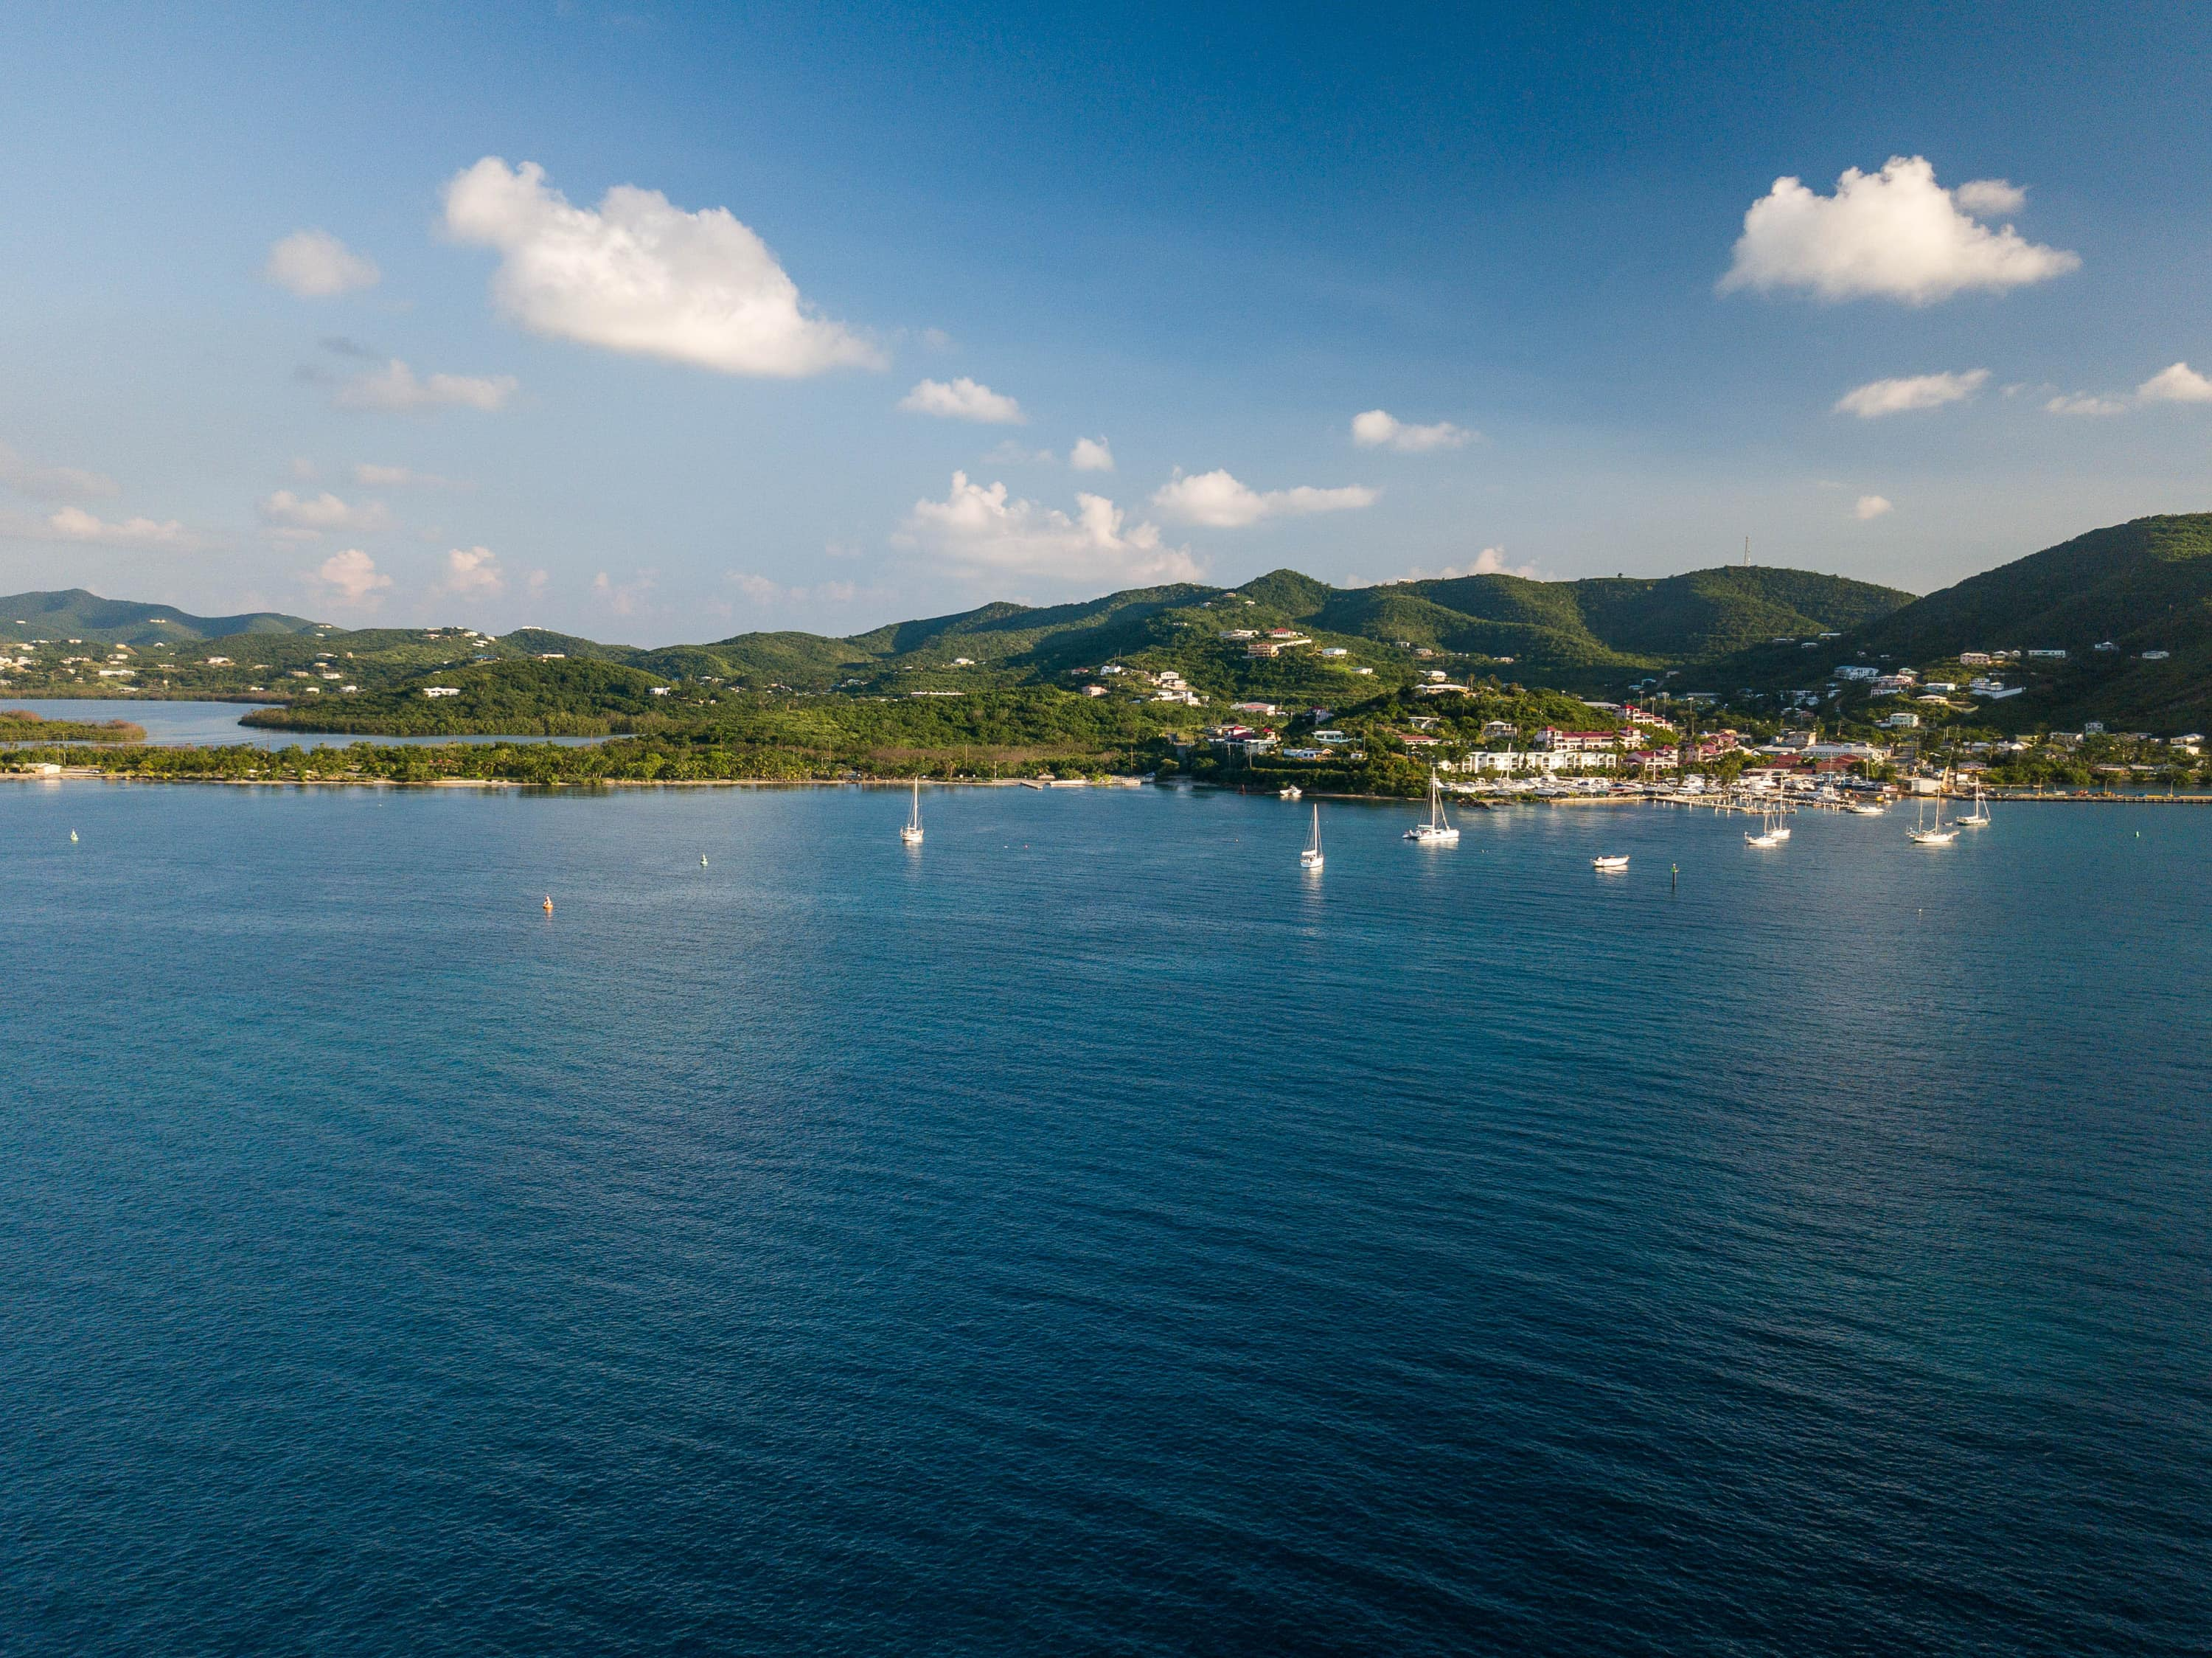 Gallows Bay, St. Croix by Seaplane